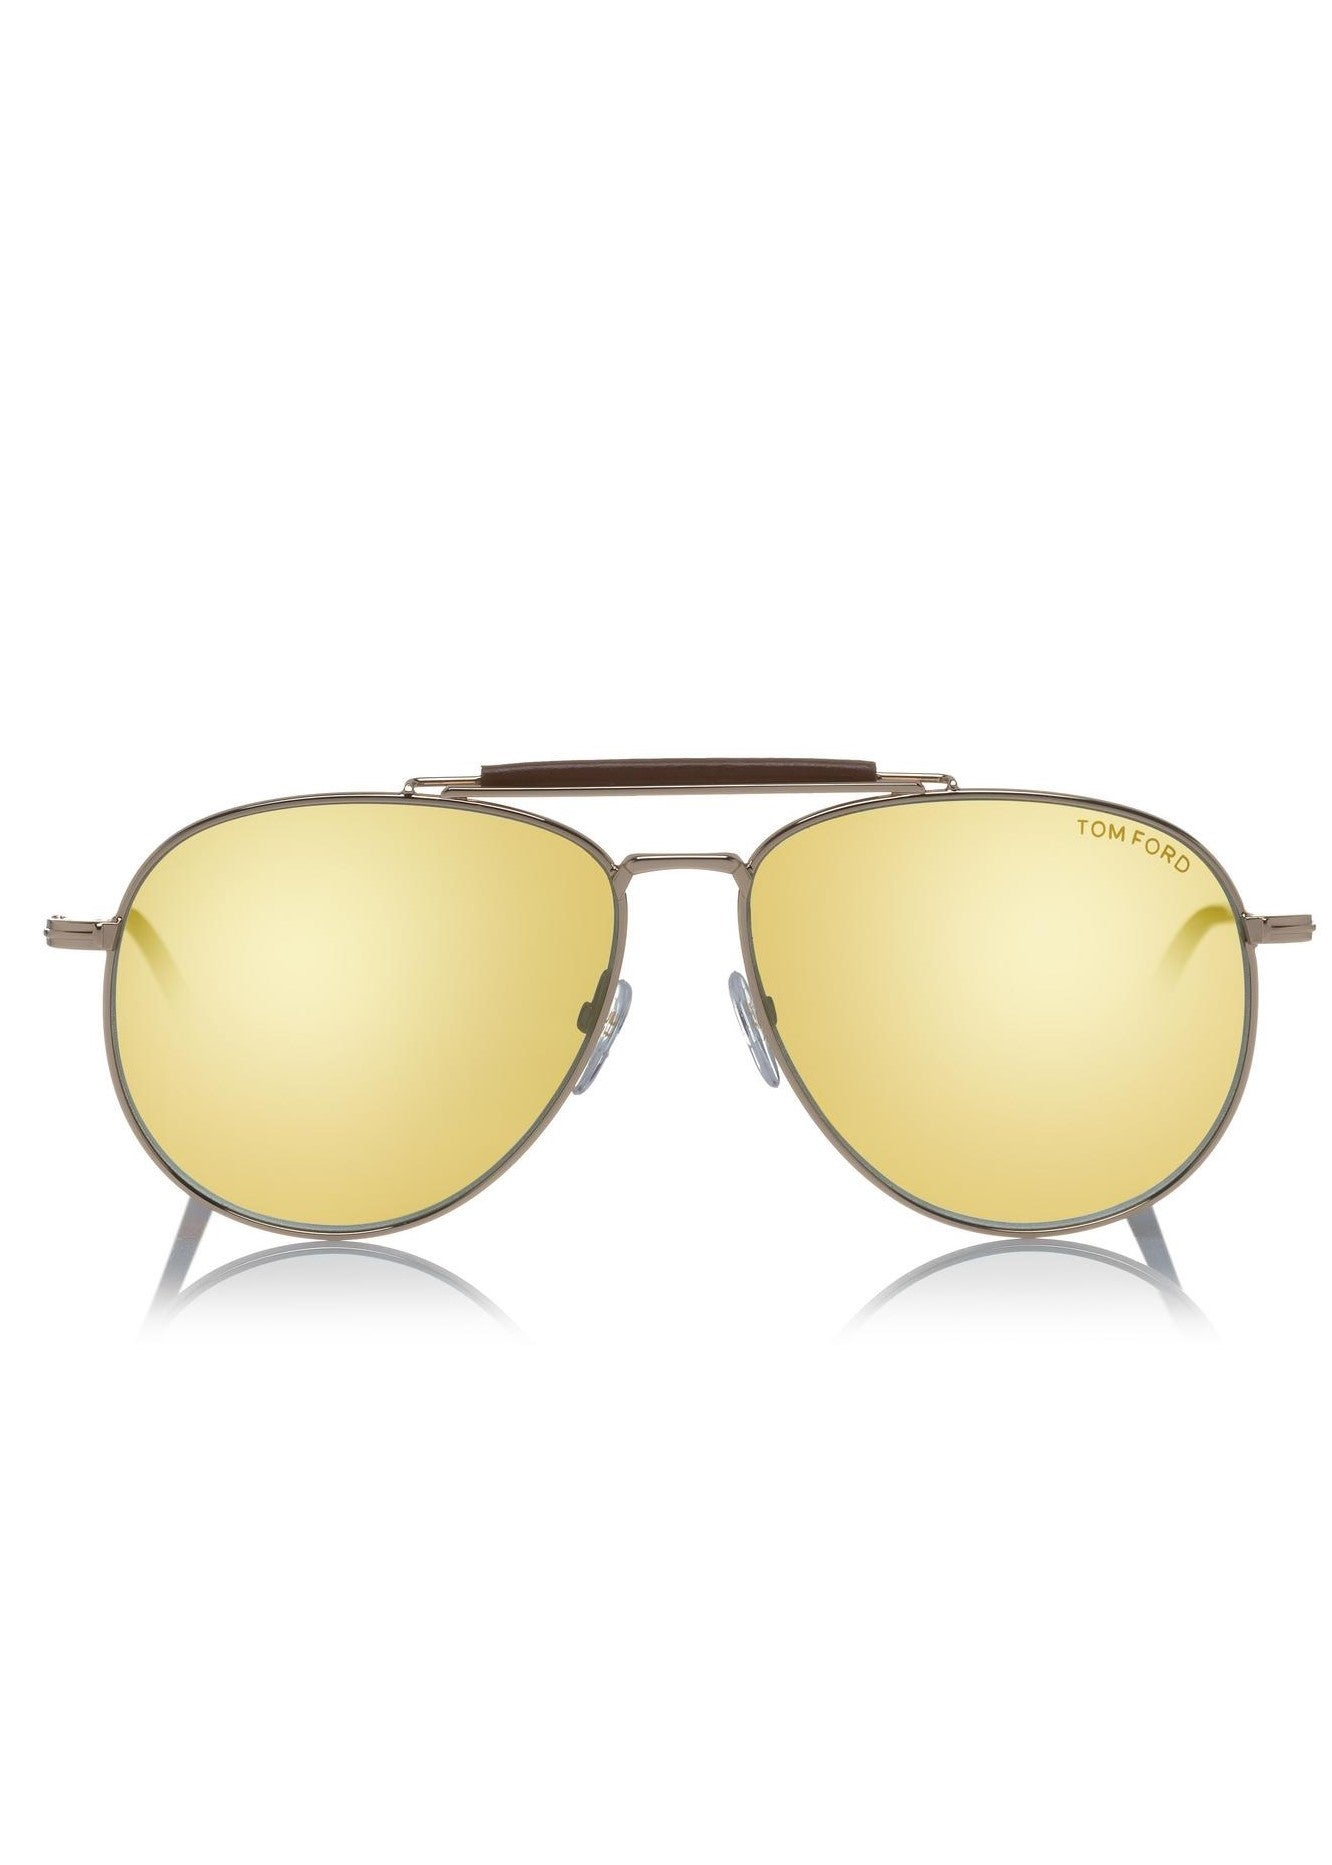 Tom Ford sean aviator sunglasses with leather detail gold